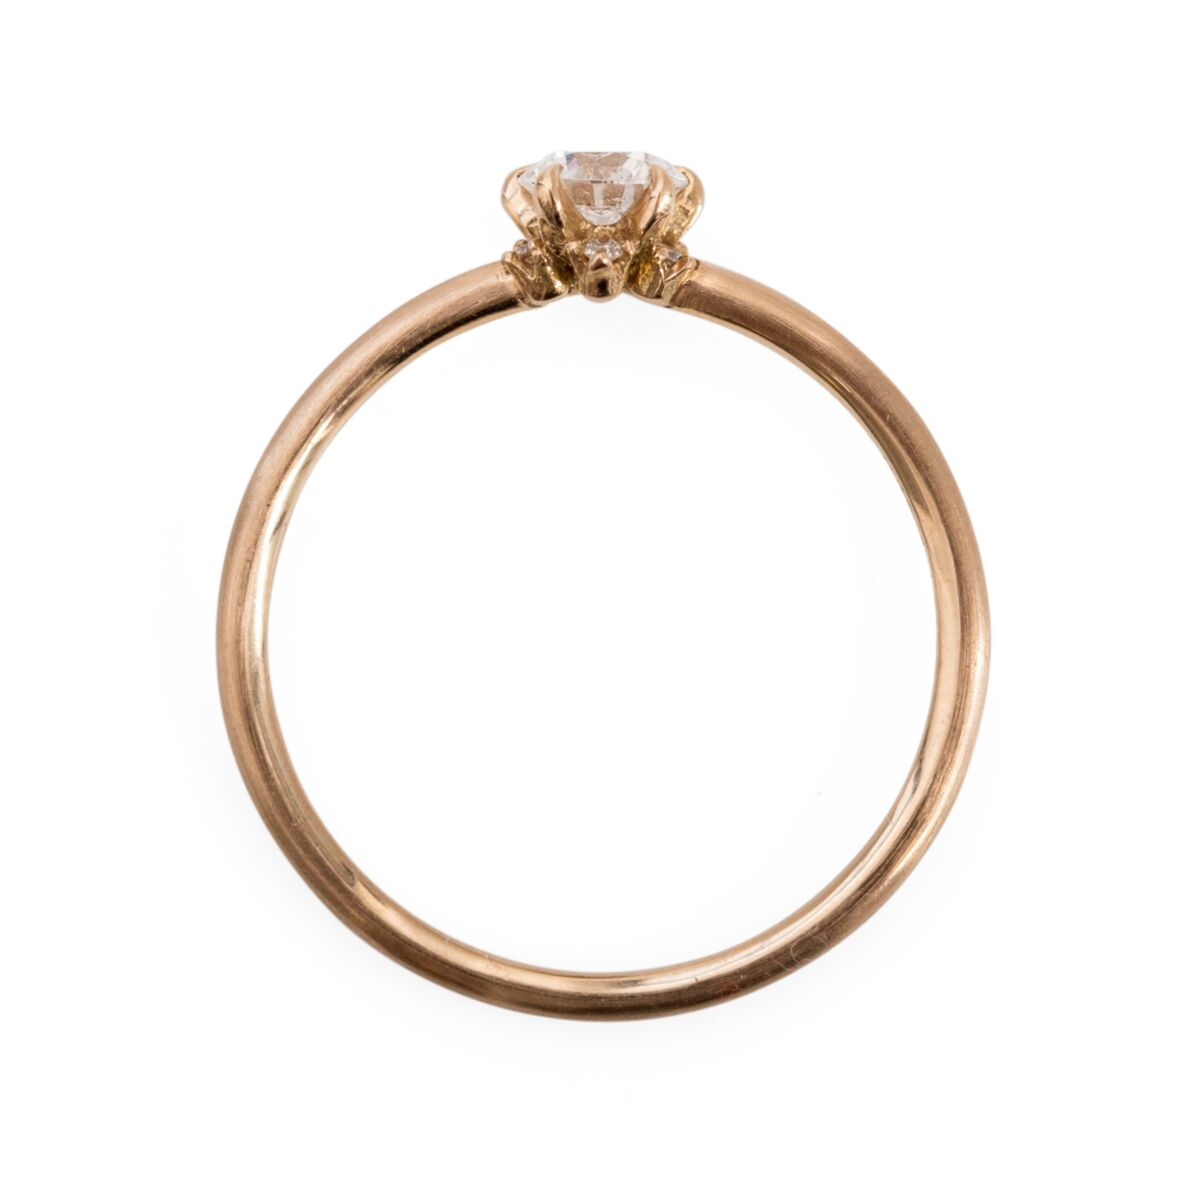 Japanese Apricot Ring image